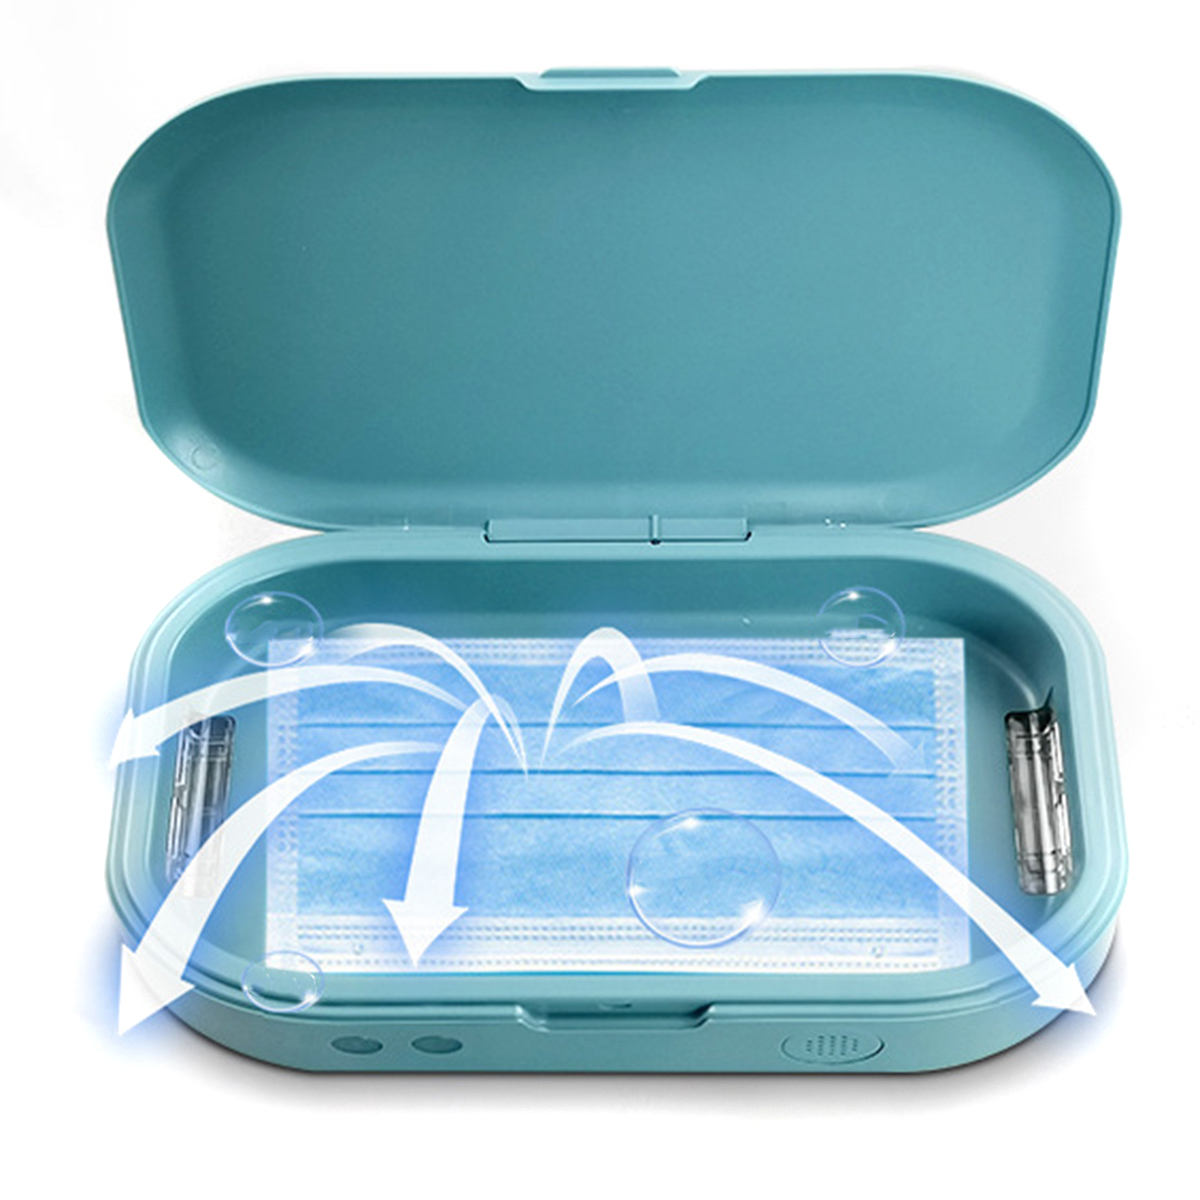 UV Sanitizer Portable Ultraviolet Light Toothbrush Mobile Phone Sterilizer Box With Aromatherapy Function For Travel Home